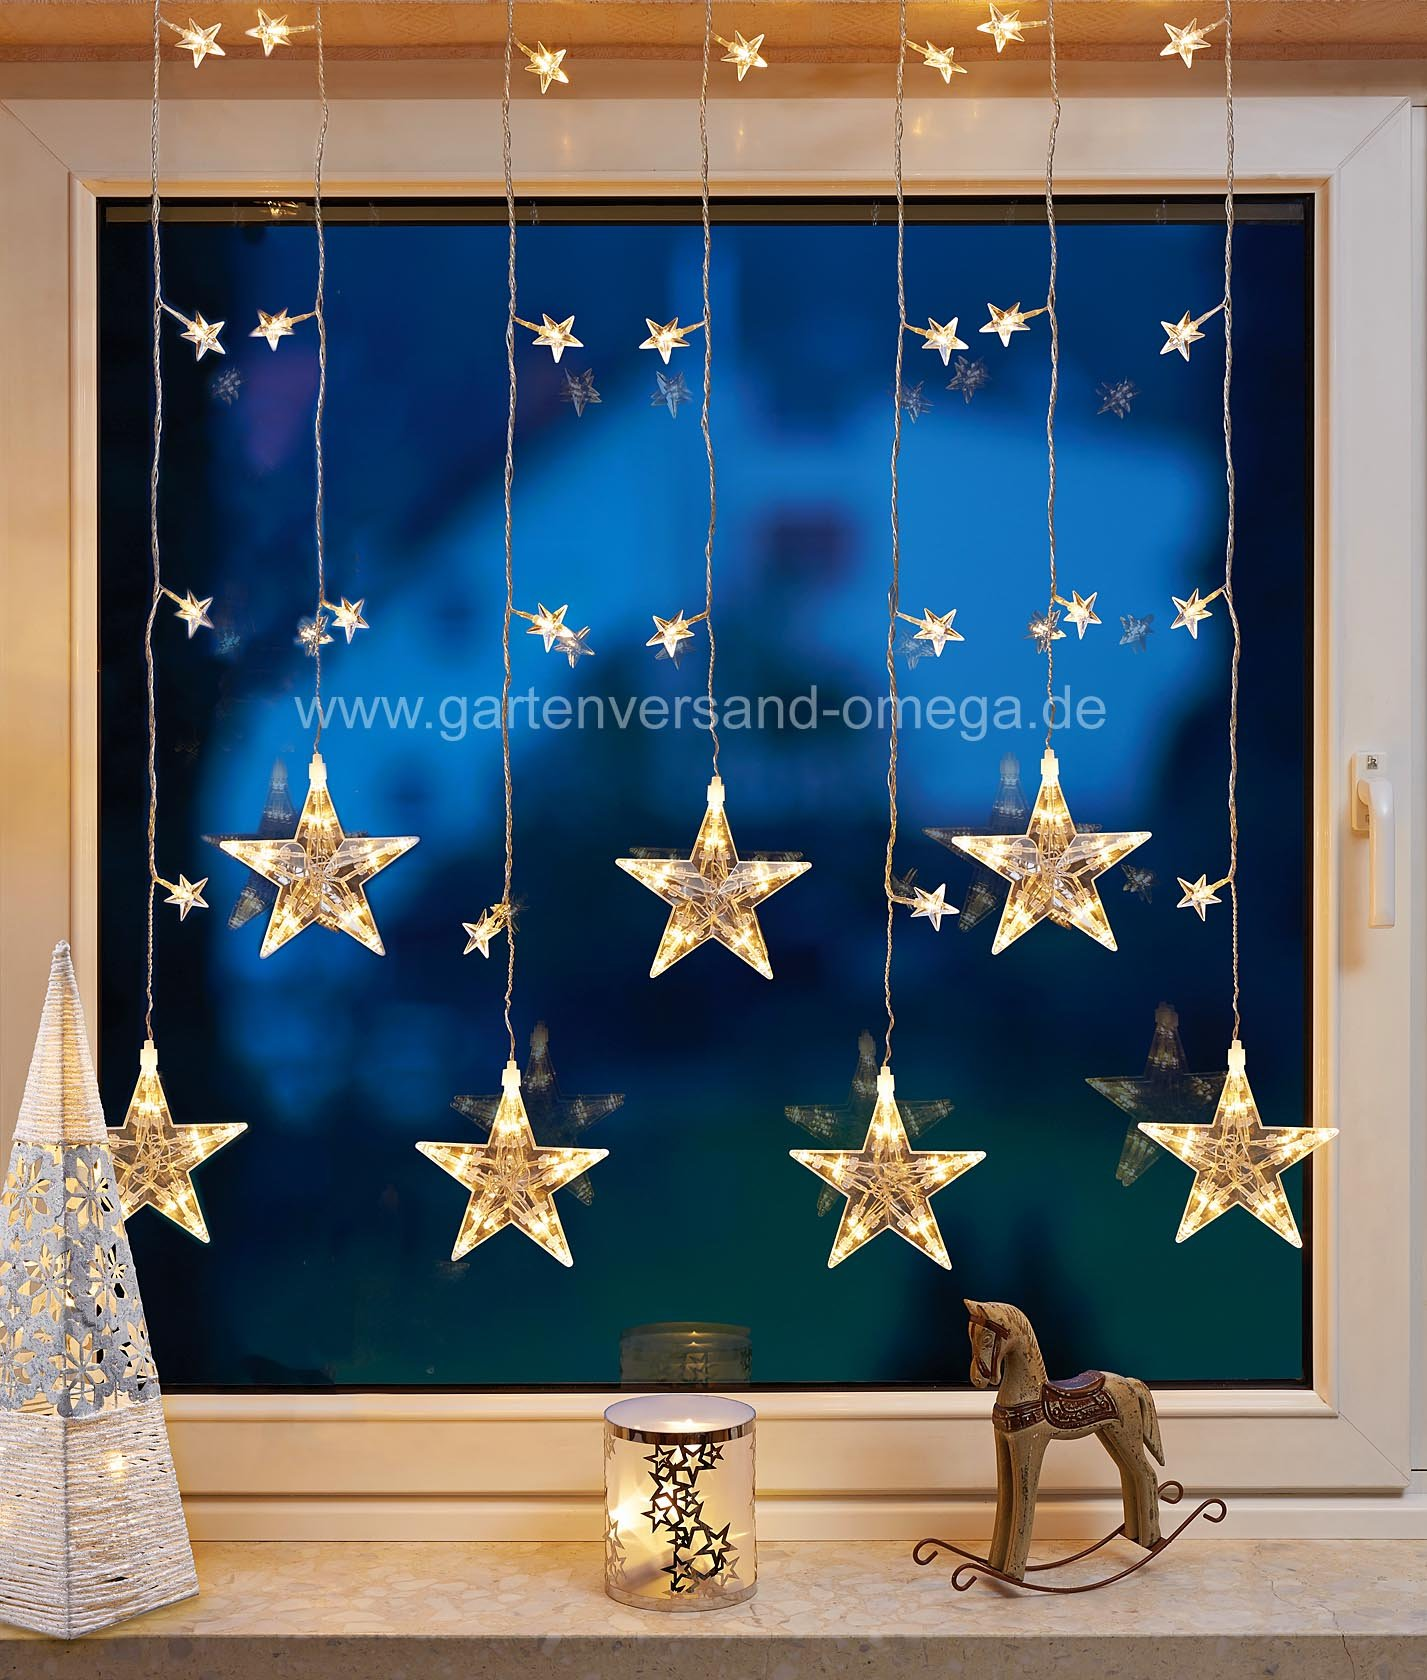 weihnachtsdeko fenster licht weihnachtsdeko f r fenster gartenweb weihnachtsdeko fenster led. Black Bedroom Furniture Sets. Home Design Ideas